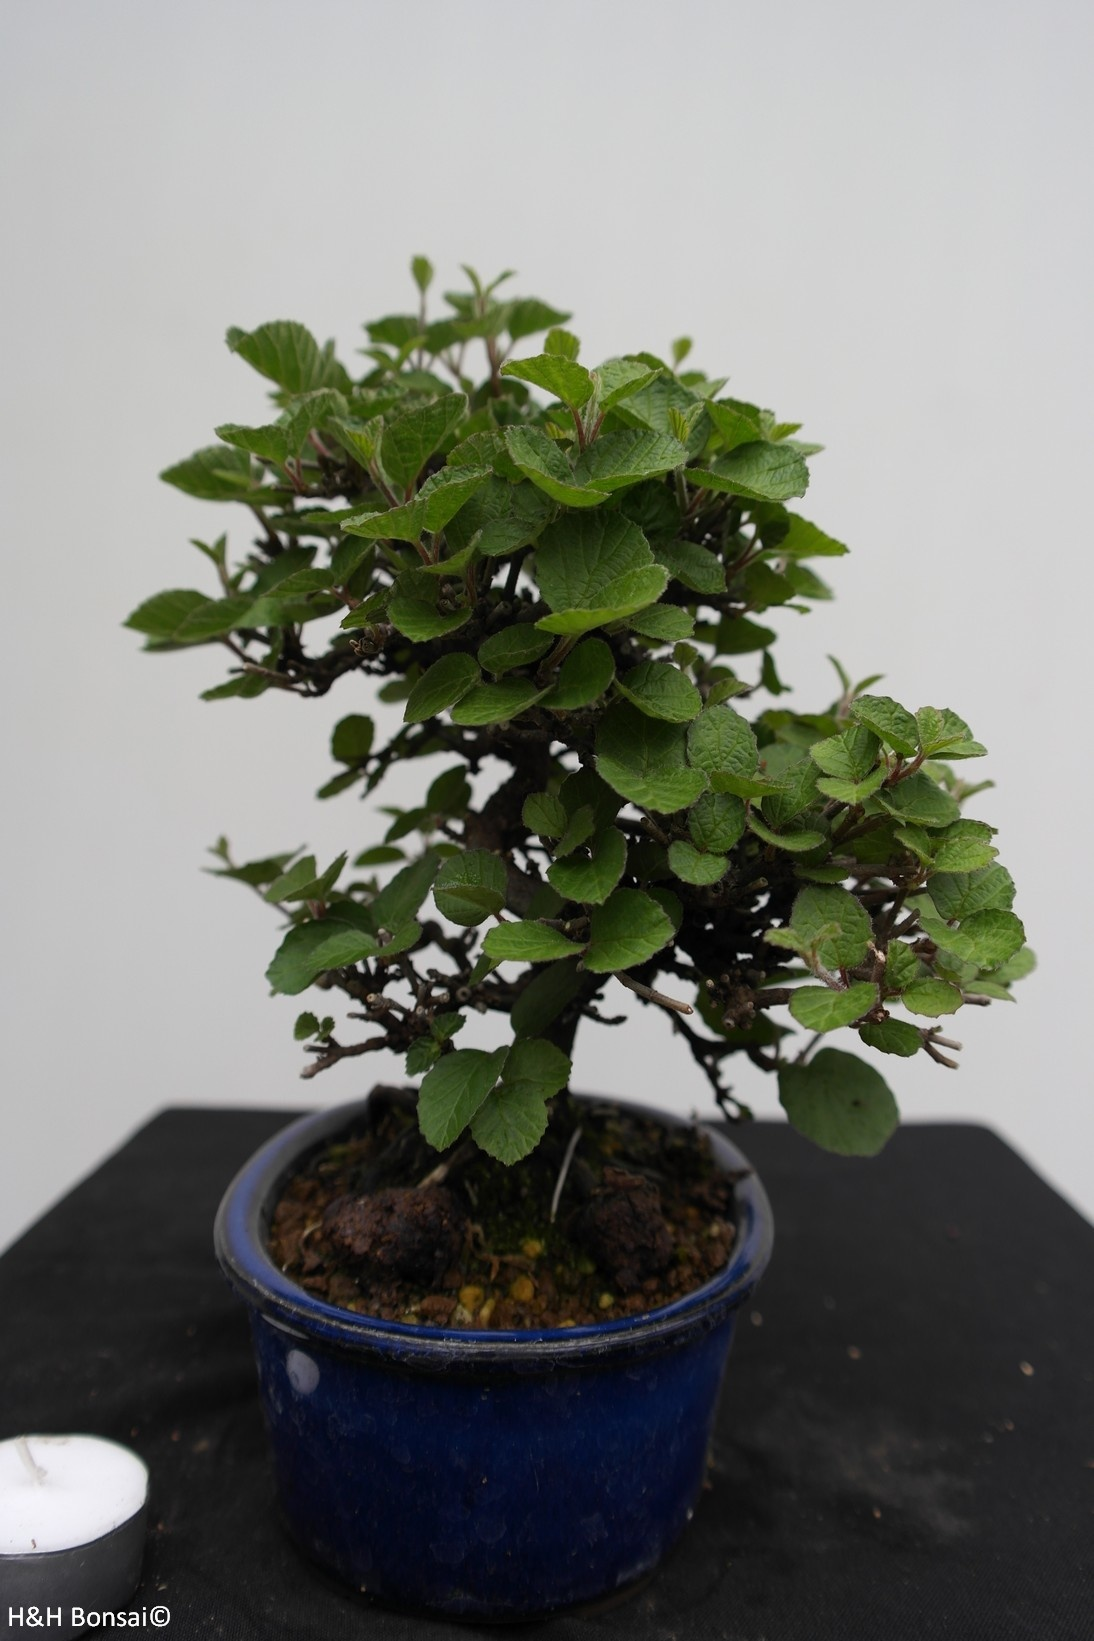 Bonsai Shohin Viburnum, no. 7782